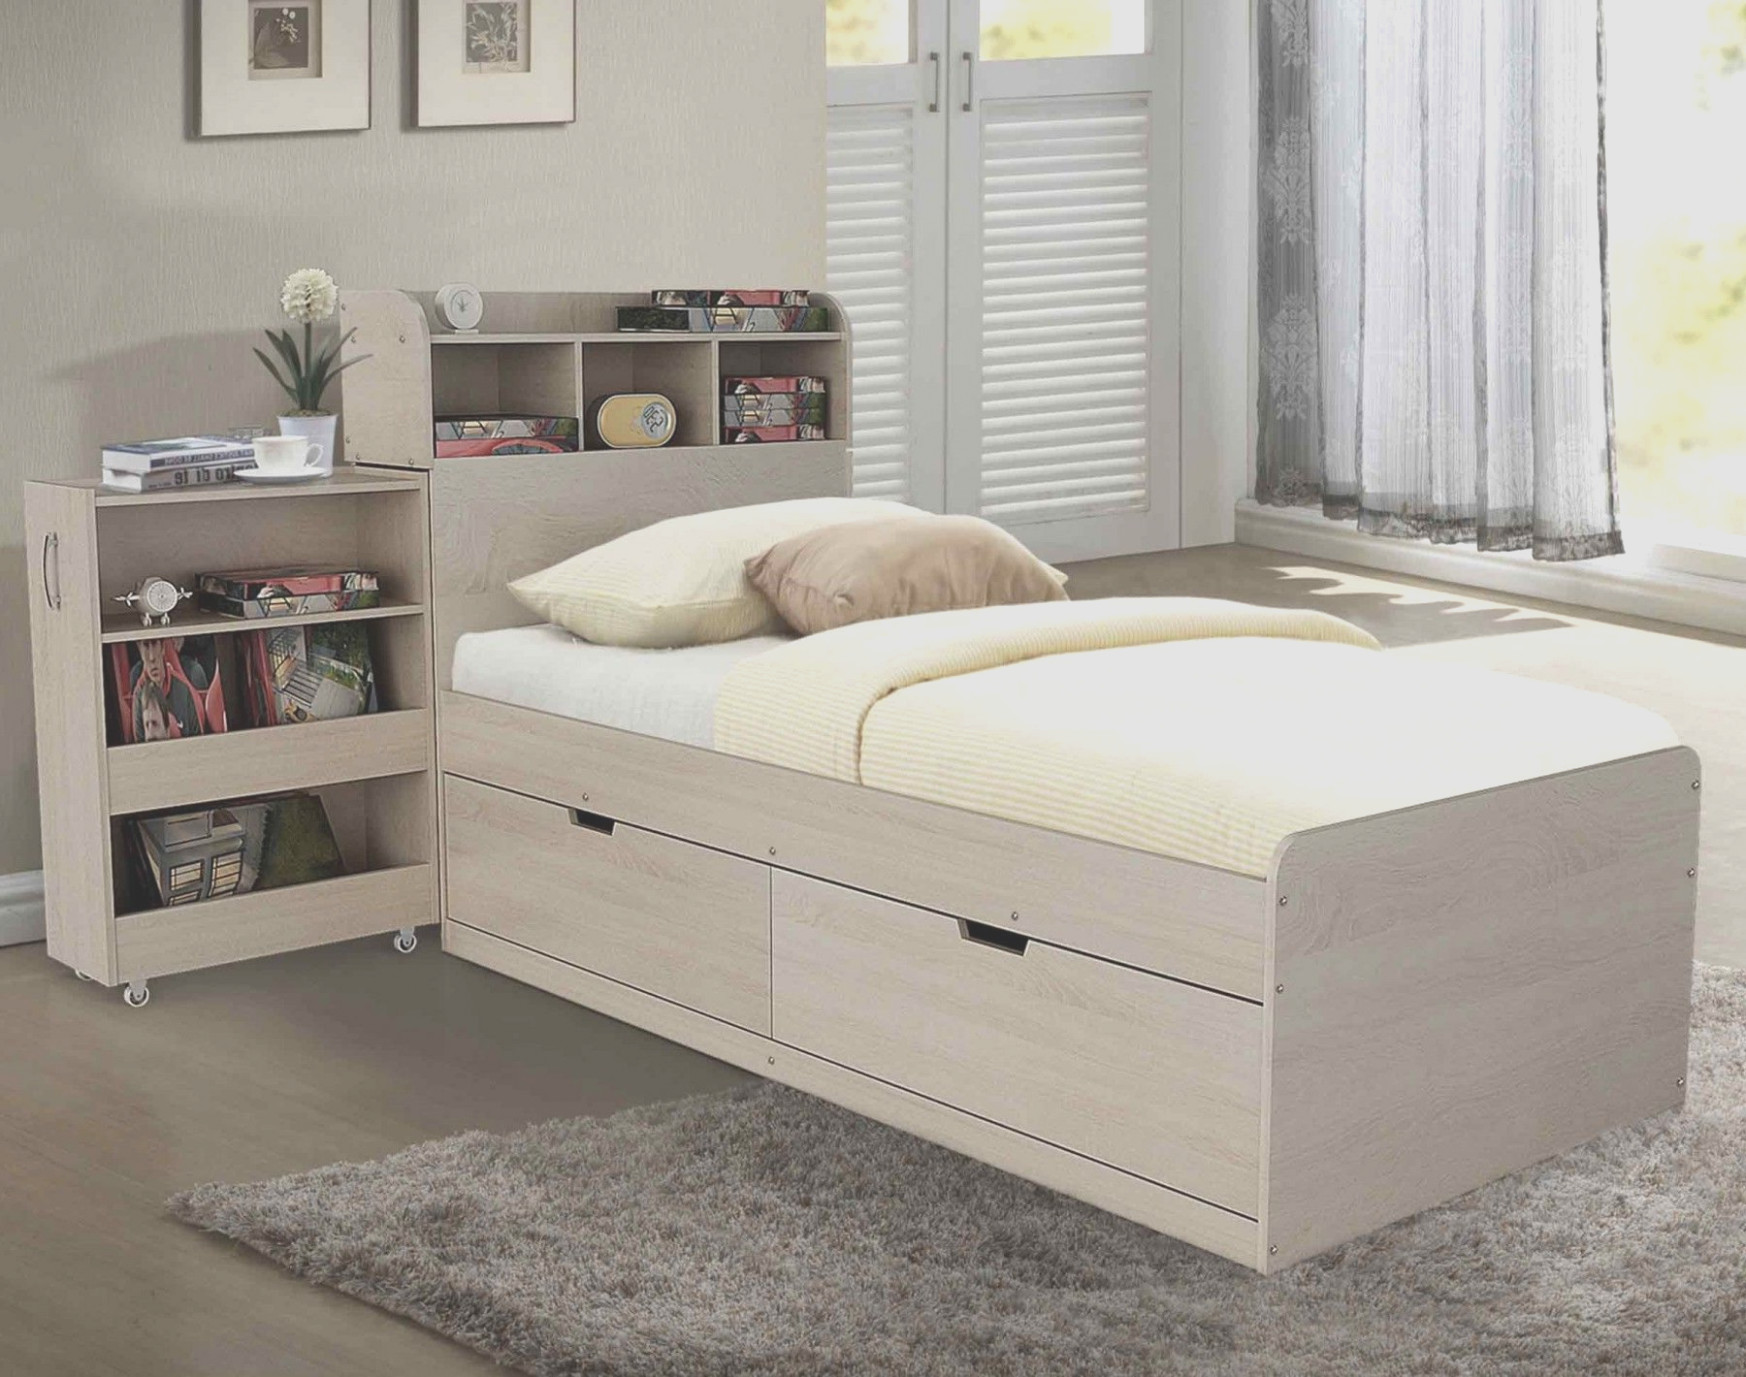 Bed With Cabinet Under